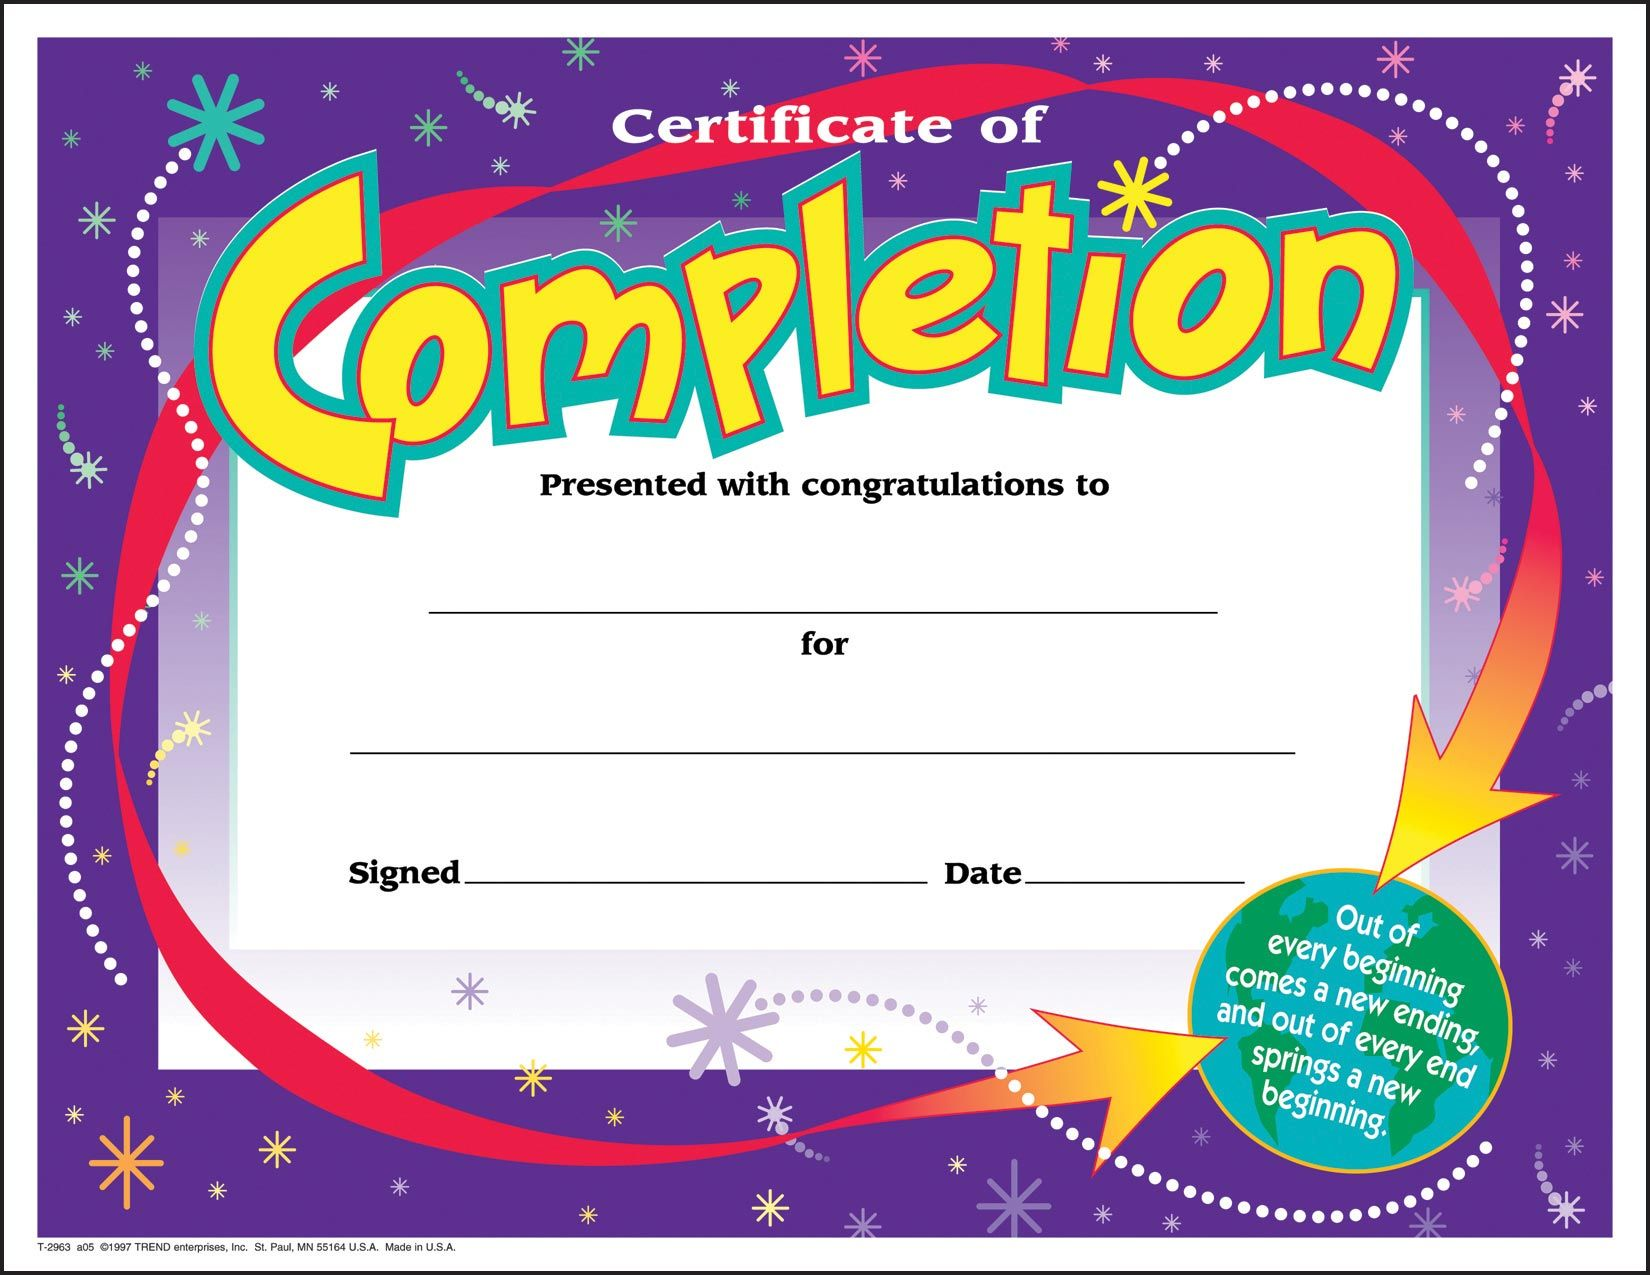 30 certificates of completion large certificate award pack by 30 certificates of completion large certificate award pack by trend yadclub Images